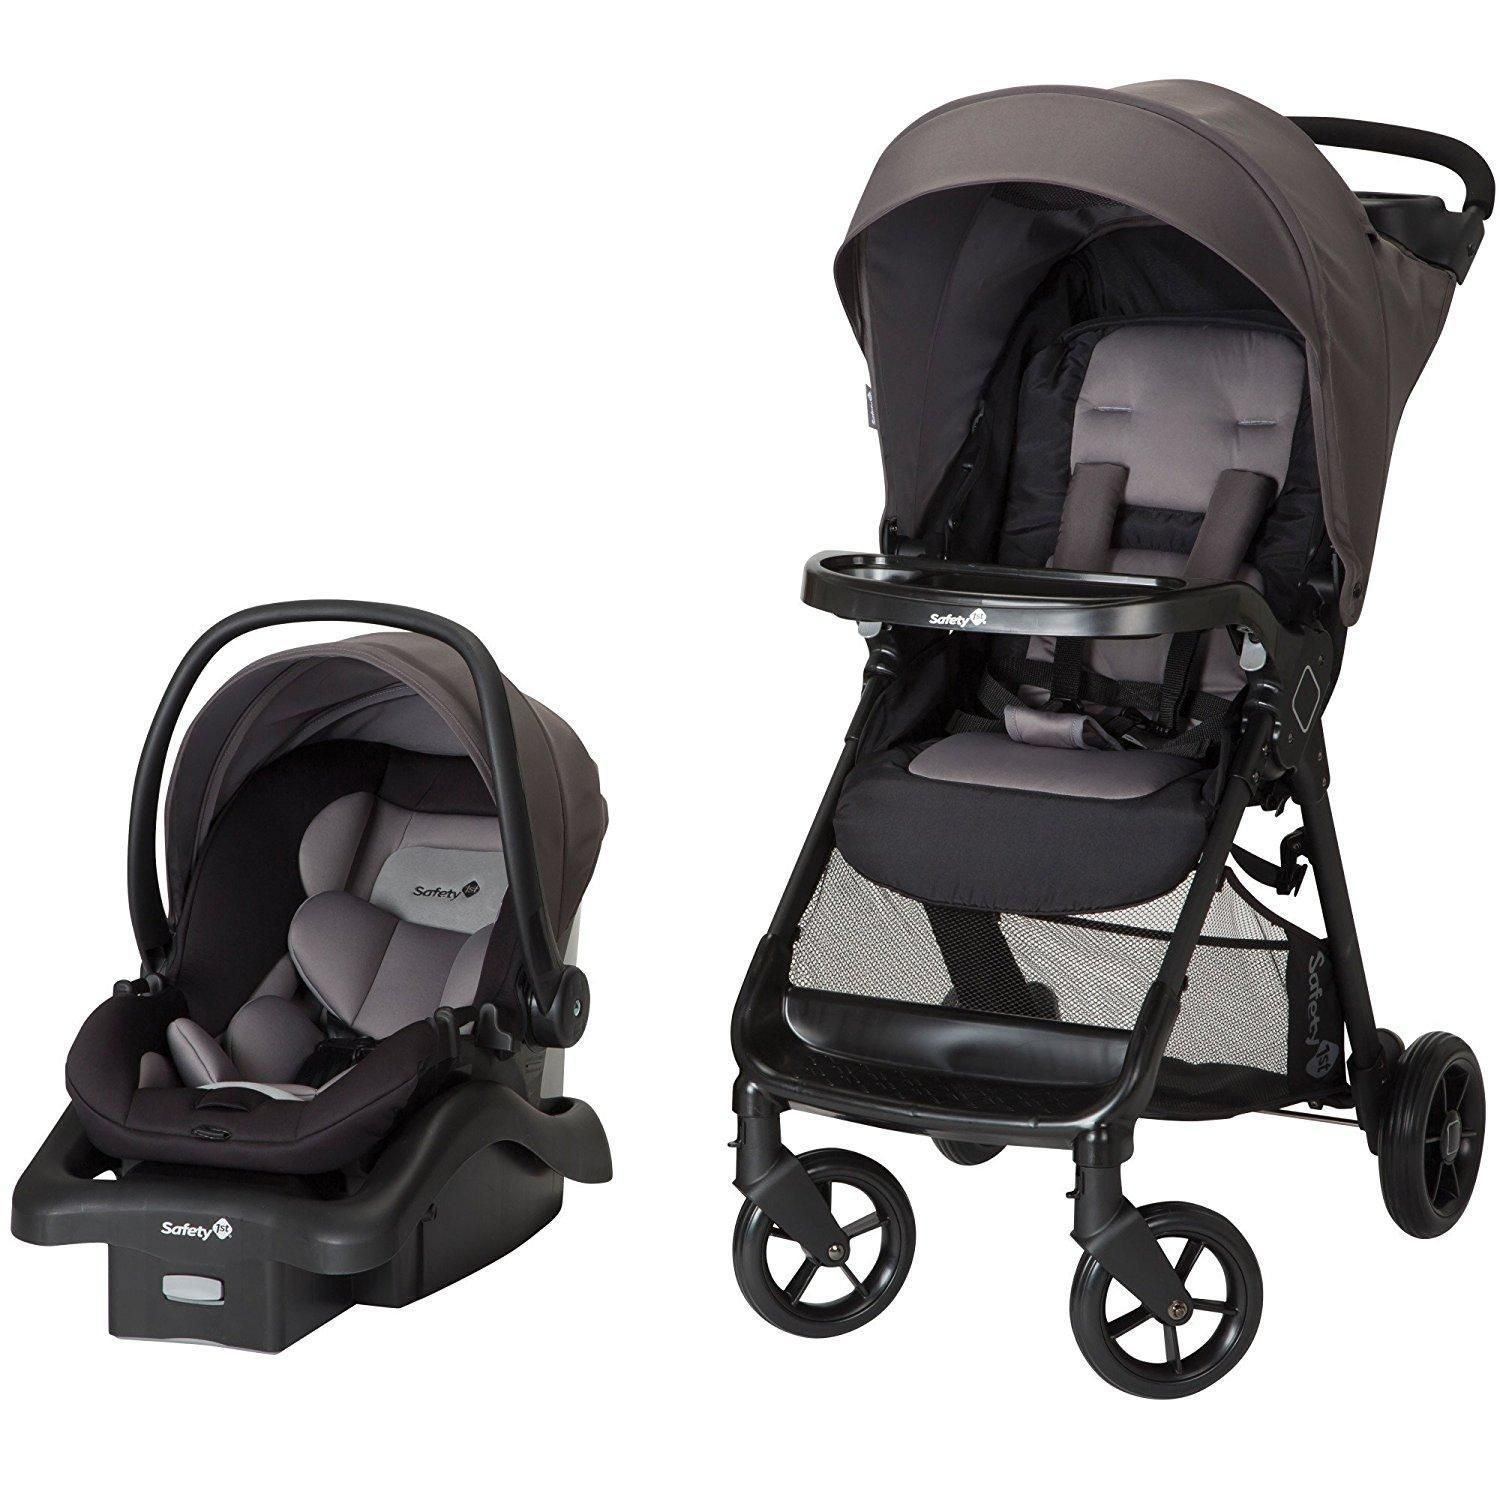 Safety 1st Smooth Ride Travel System with Board 35 LT Infant Car Seat